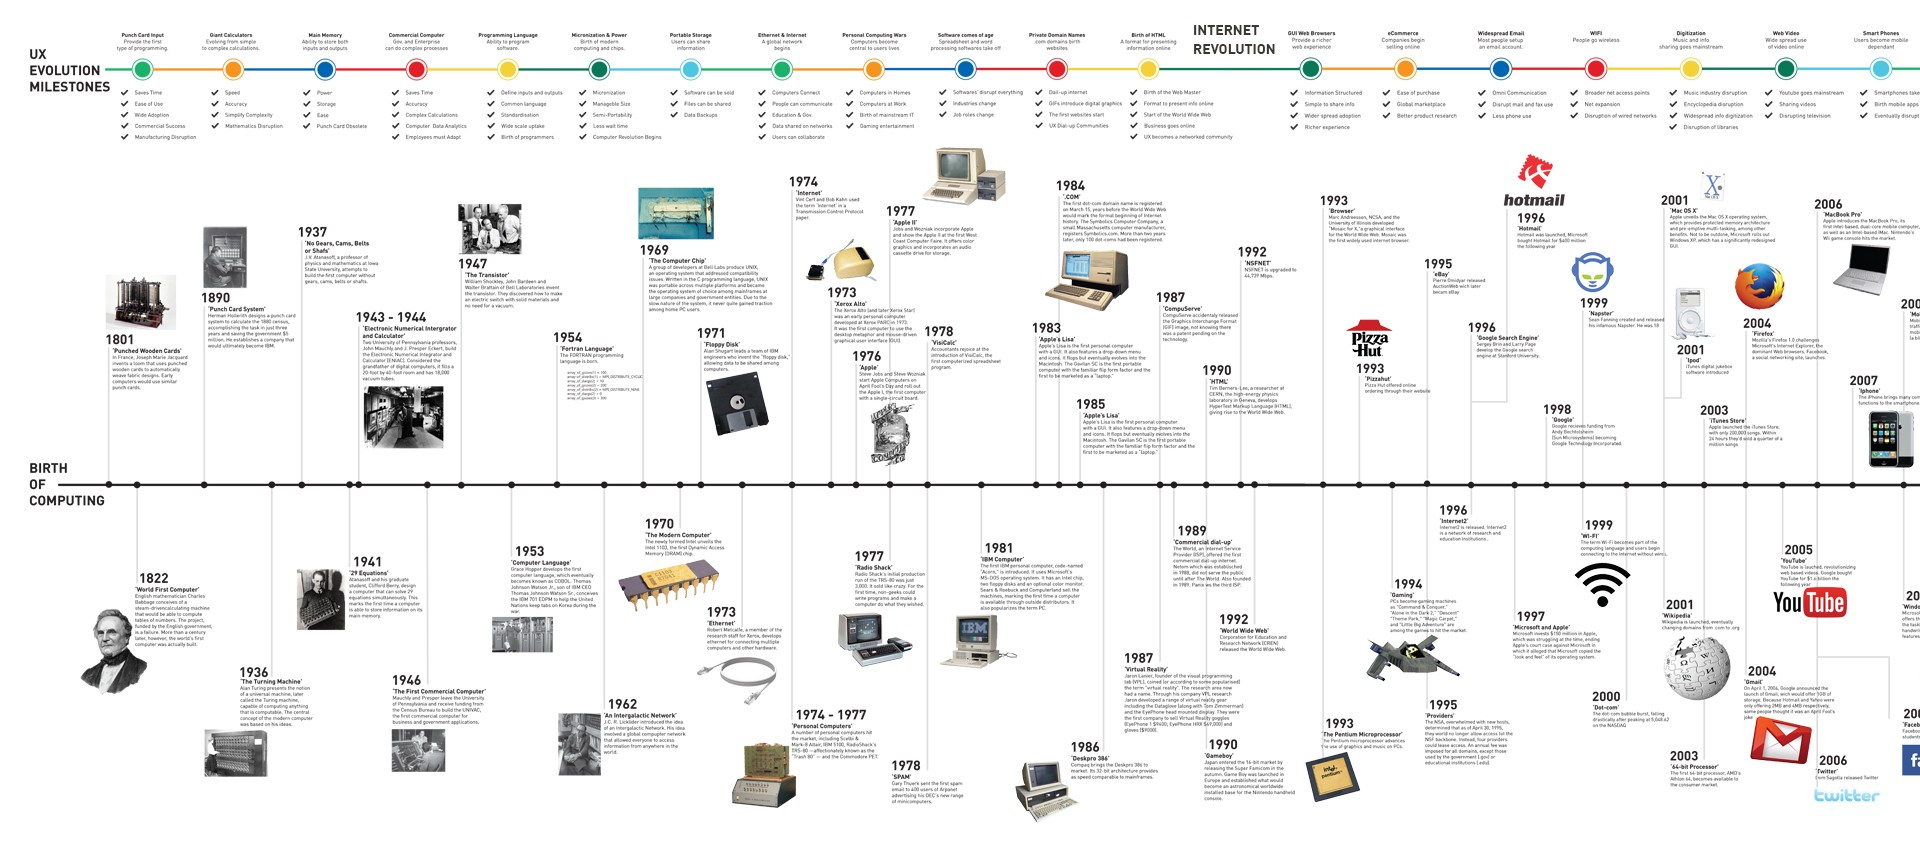 a history of computer The history of computer programming an overview of computer programming computer programmer (probably) you probably use computers and programs on a daily basis, but you might not be aware that the first pre-computers didn't even use electricity or that the first computer programmer was a woman.